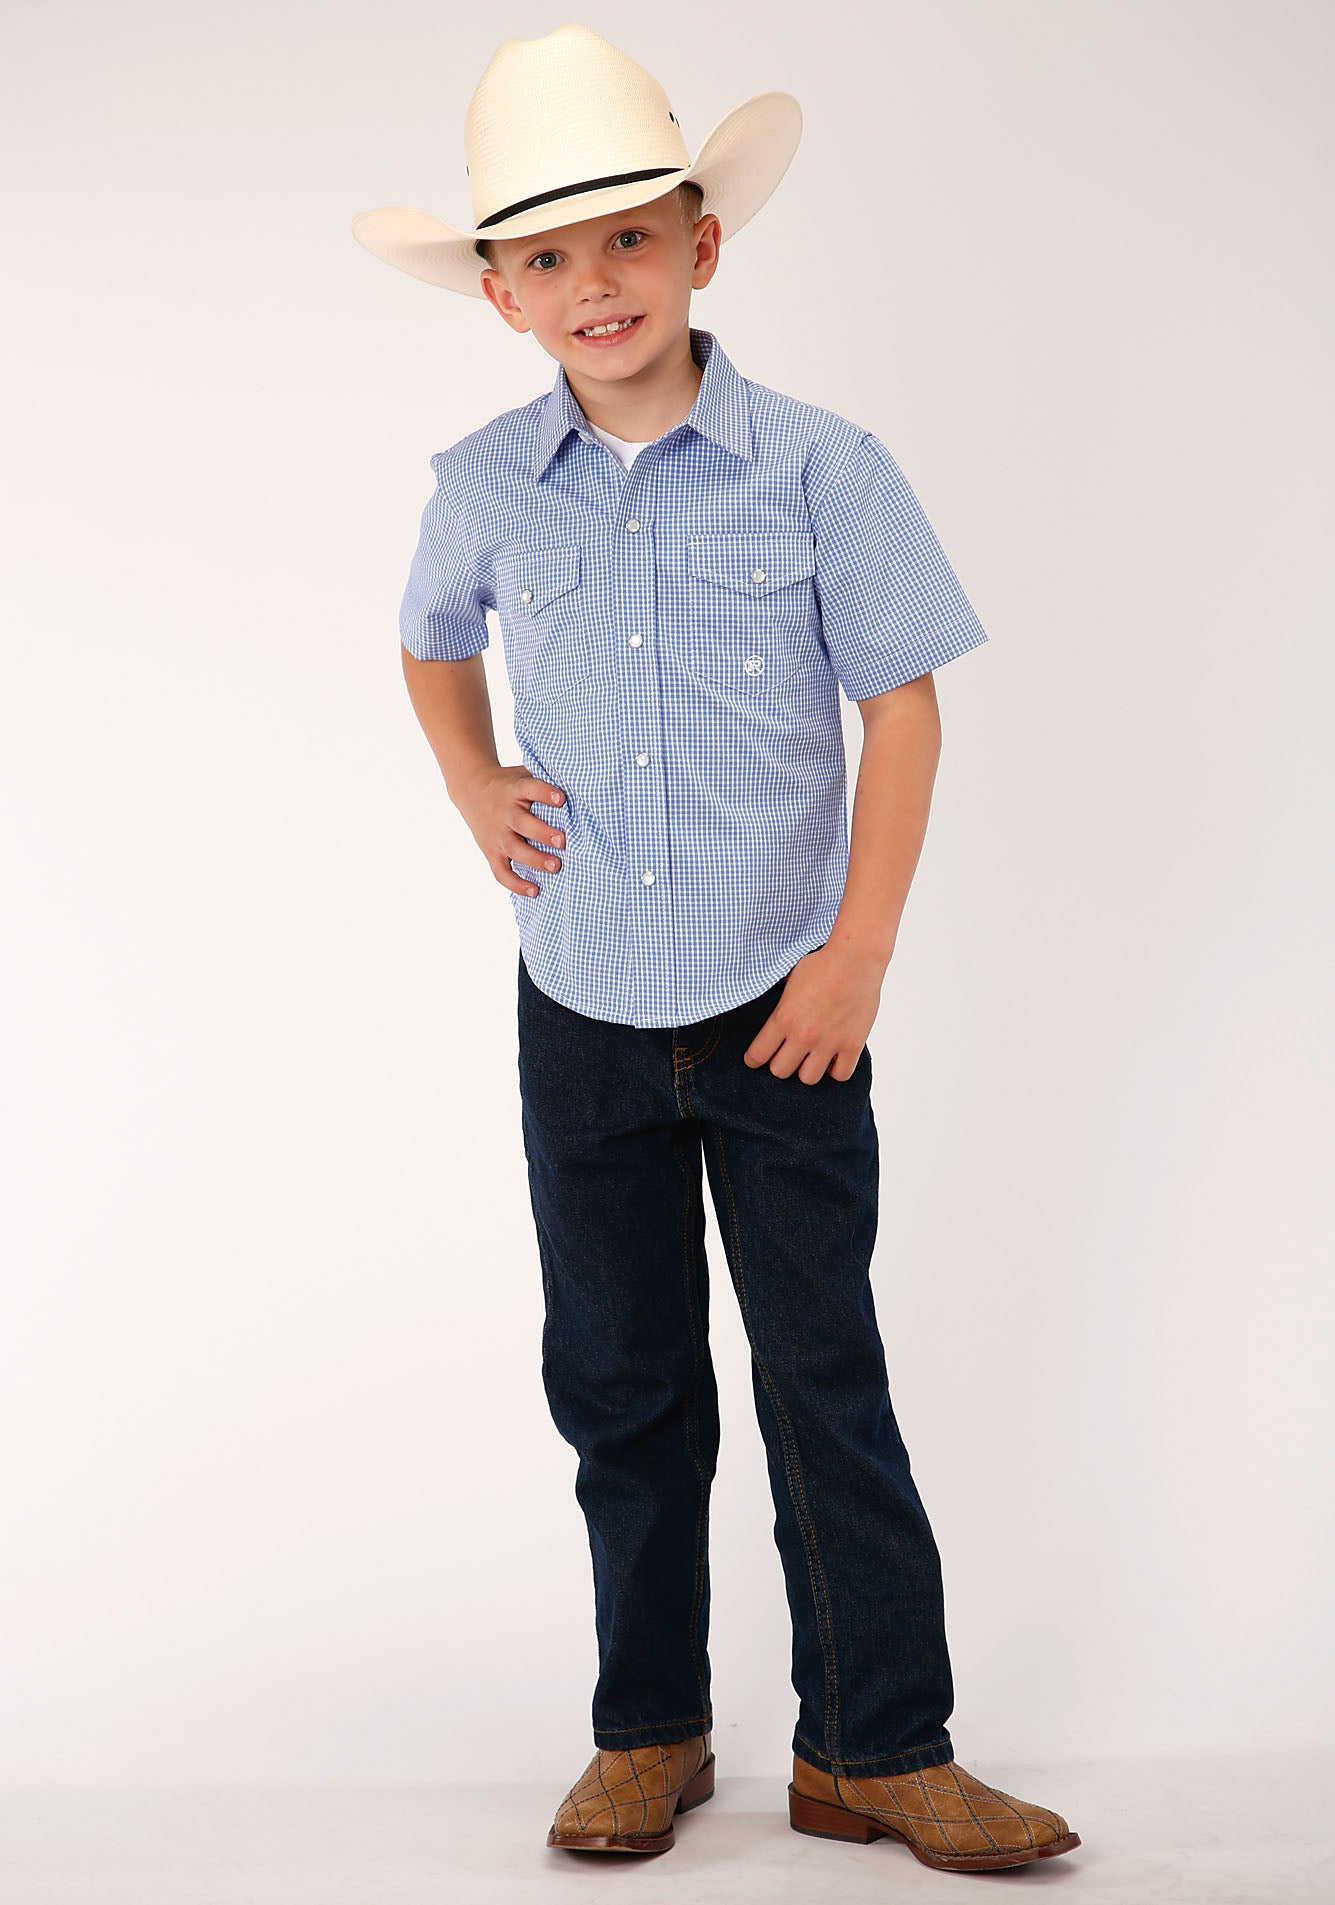 ROPER BOYS BLUE 00069 MINI CHECK - PERIWINKLE BOYS AMARILLO COLLECTION- DUSK SHORT SLEEVE